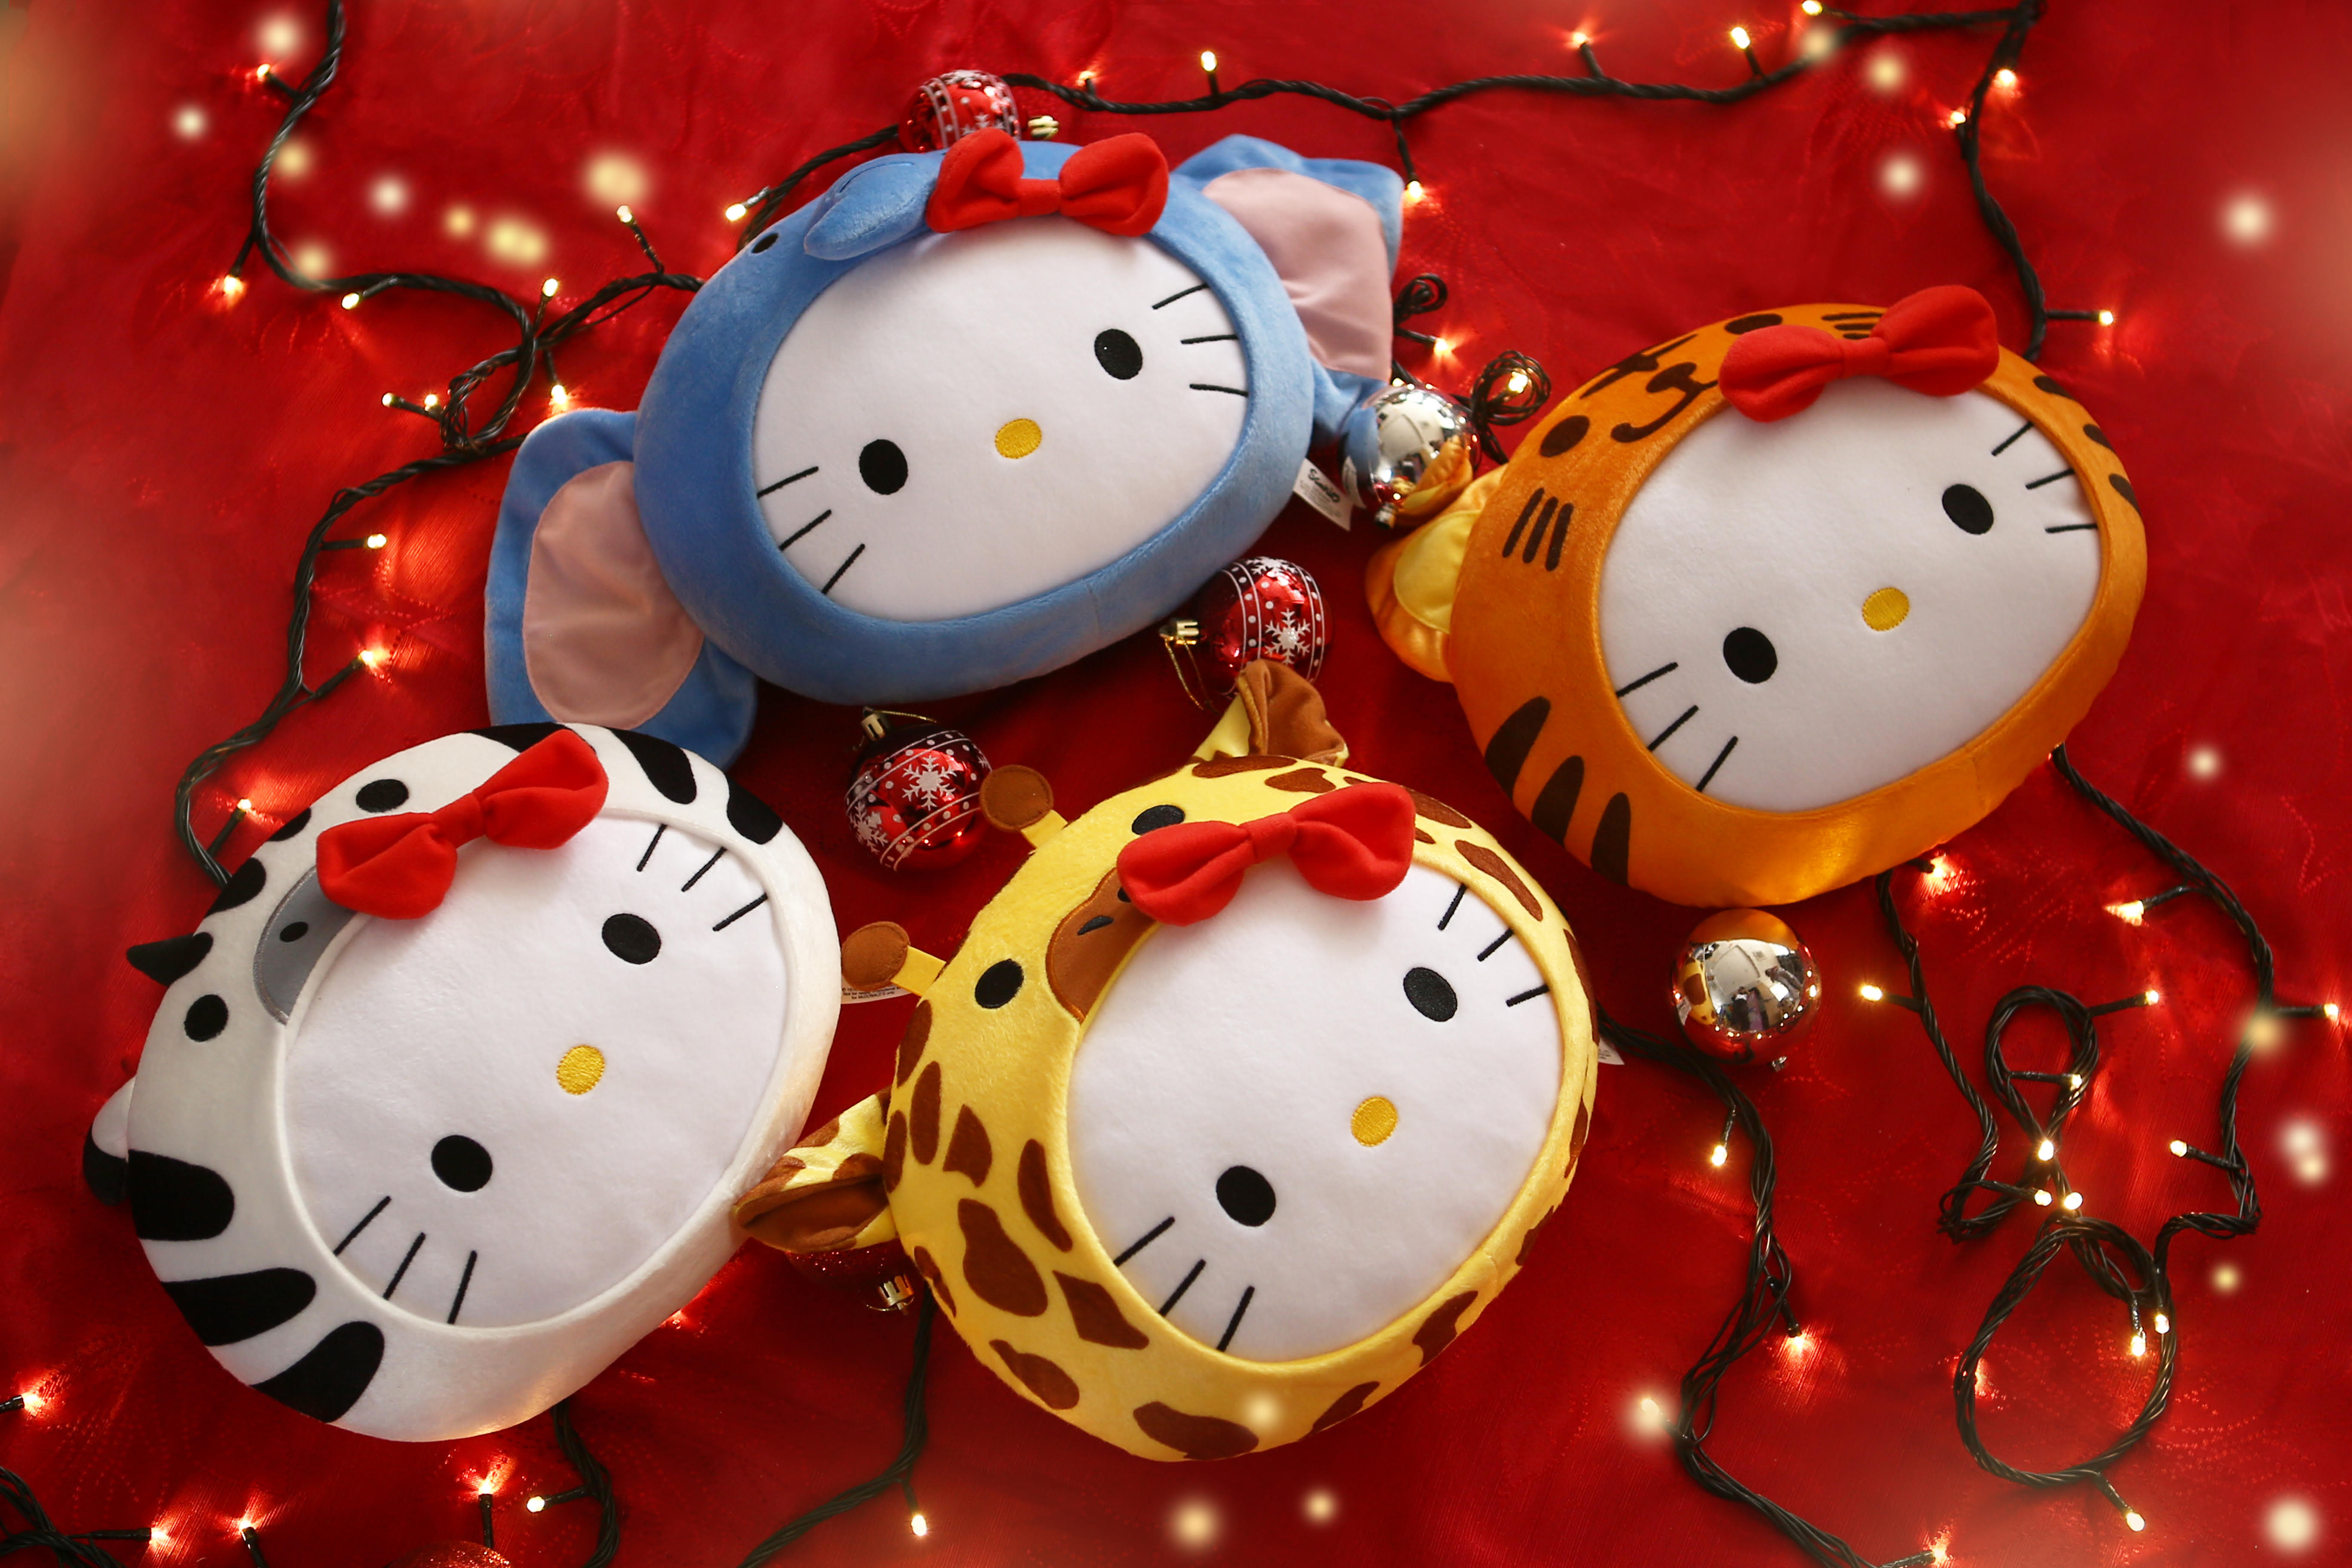 7fff80c91 Perfect For Kris Kringle: Mcdonald's Just Released The Cutest Pillows!